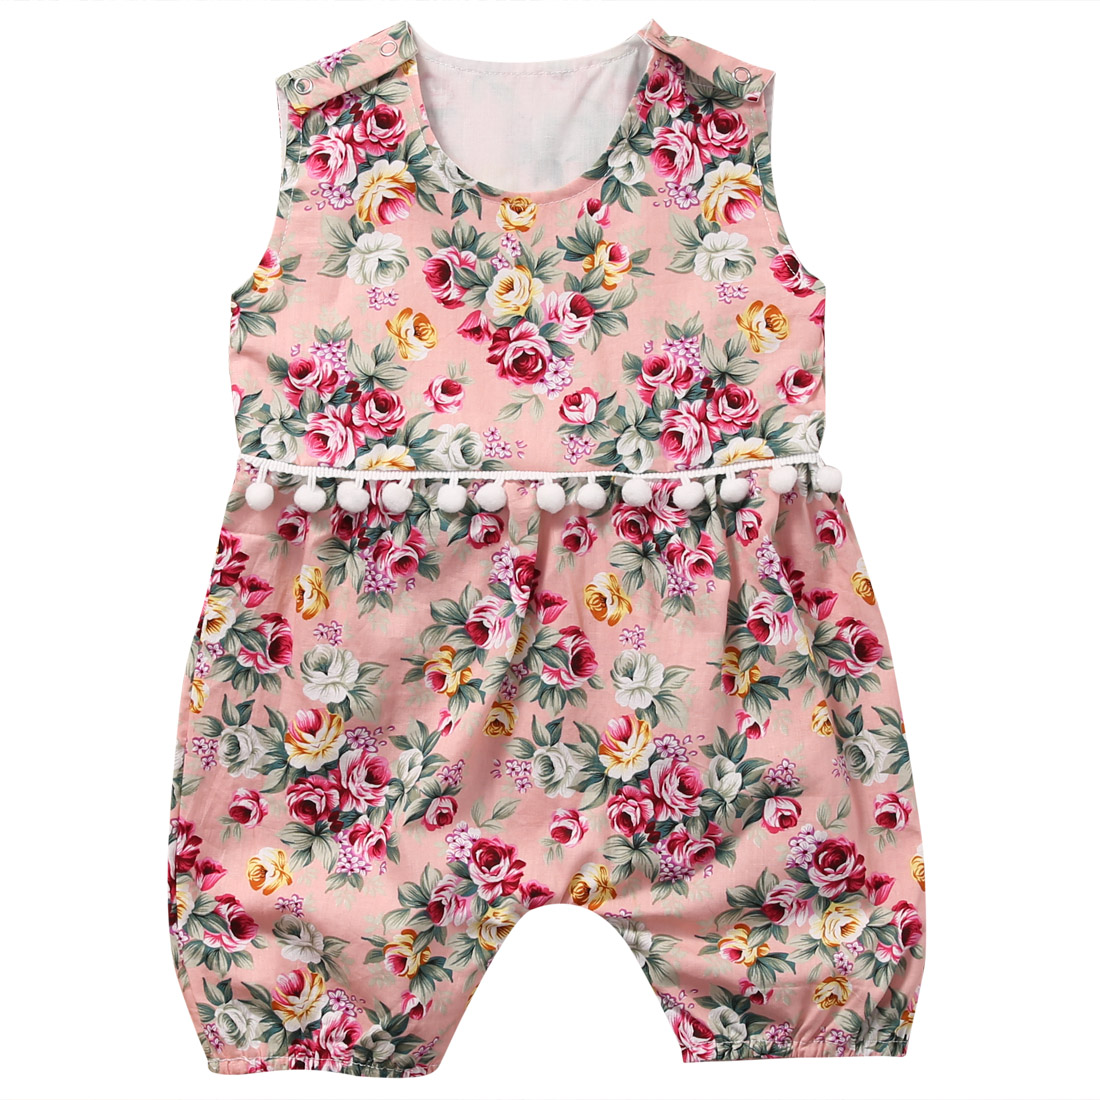 Floral Baby Girl Romper Clothes 2017 Summer Sleeveless Tassel Baby Rompers Infant Toddler Kids Jumpsuit Sunsuit Outfit 0-18M newborn infant baby girl clothes strap lace floral romper jumpsuit outfit summer cotton backless one pieces outfit baby onesie